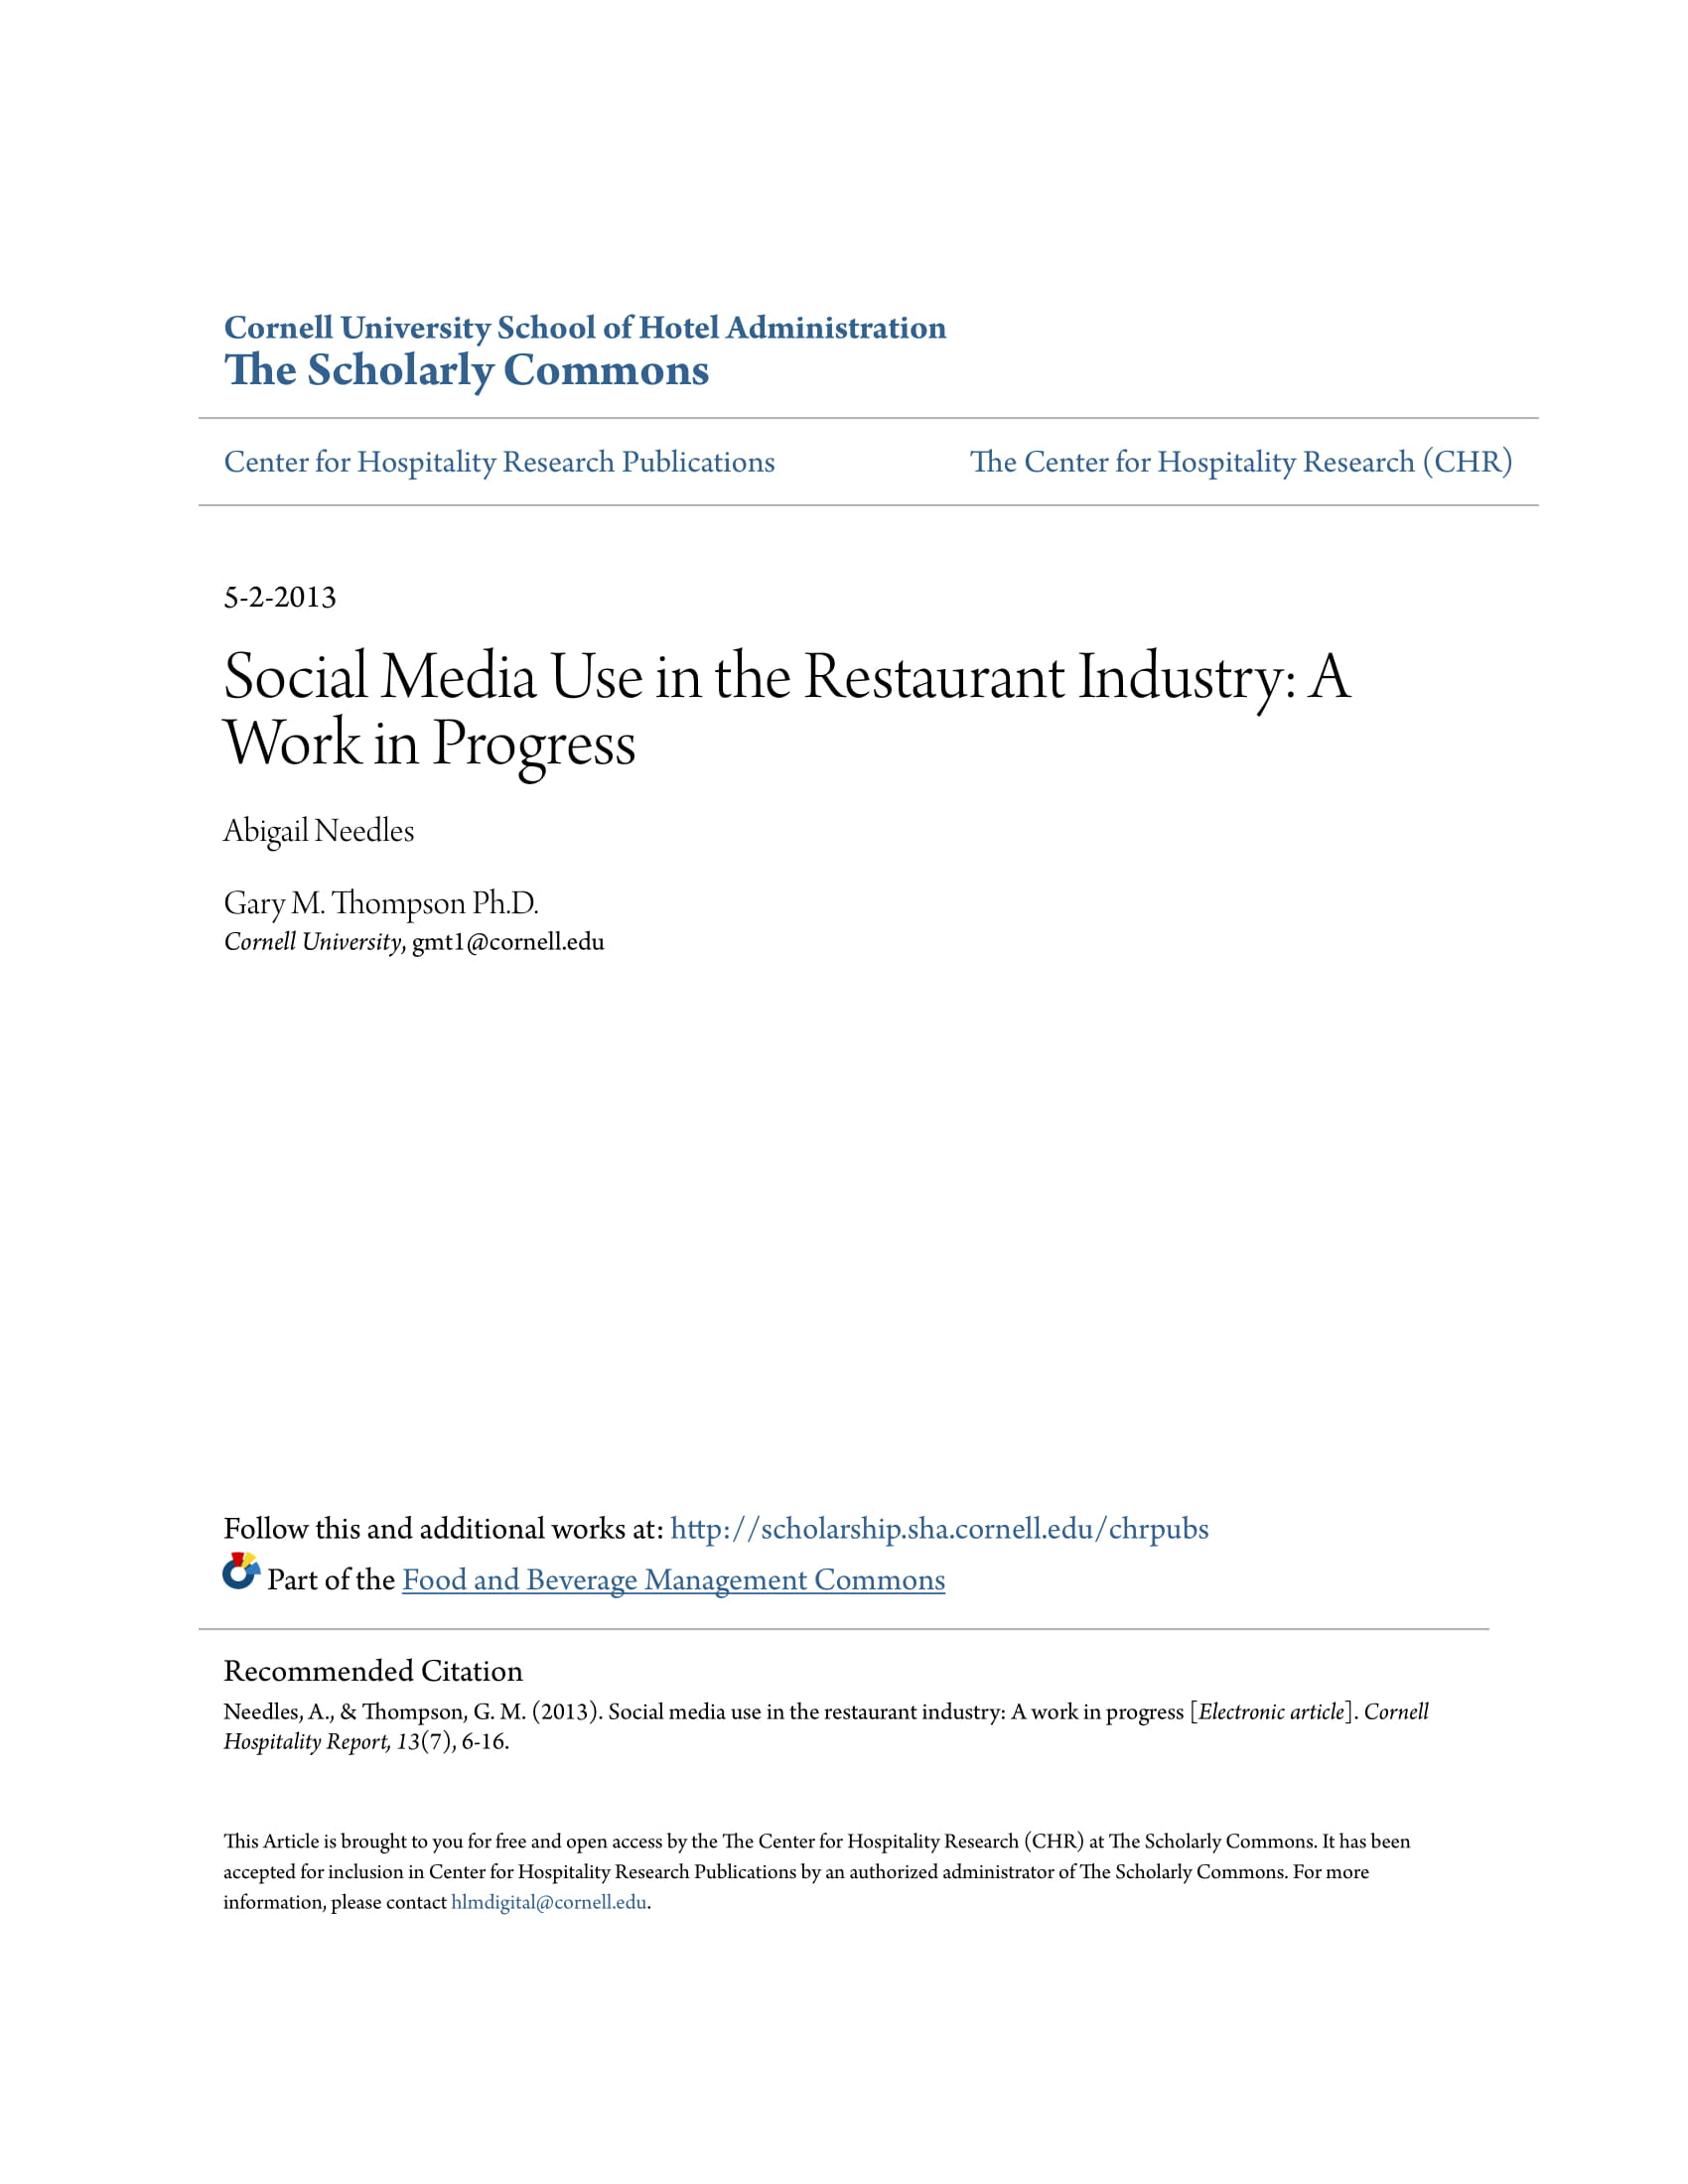 social media use in the restaurant industry business guide analysis study and proposal example 01